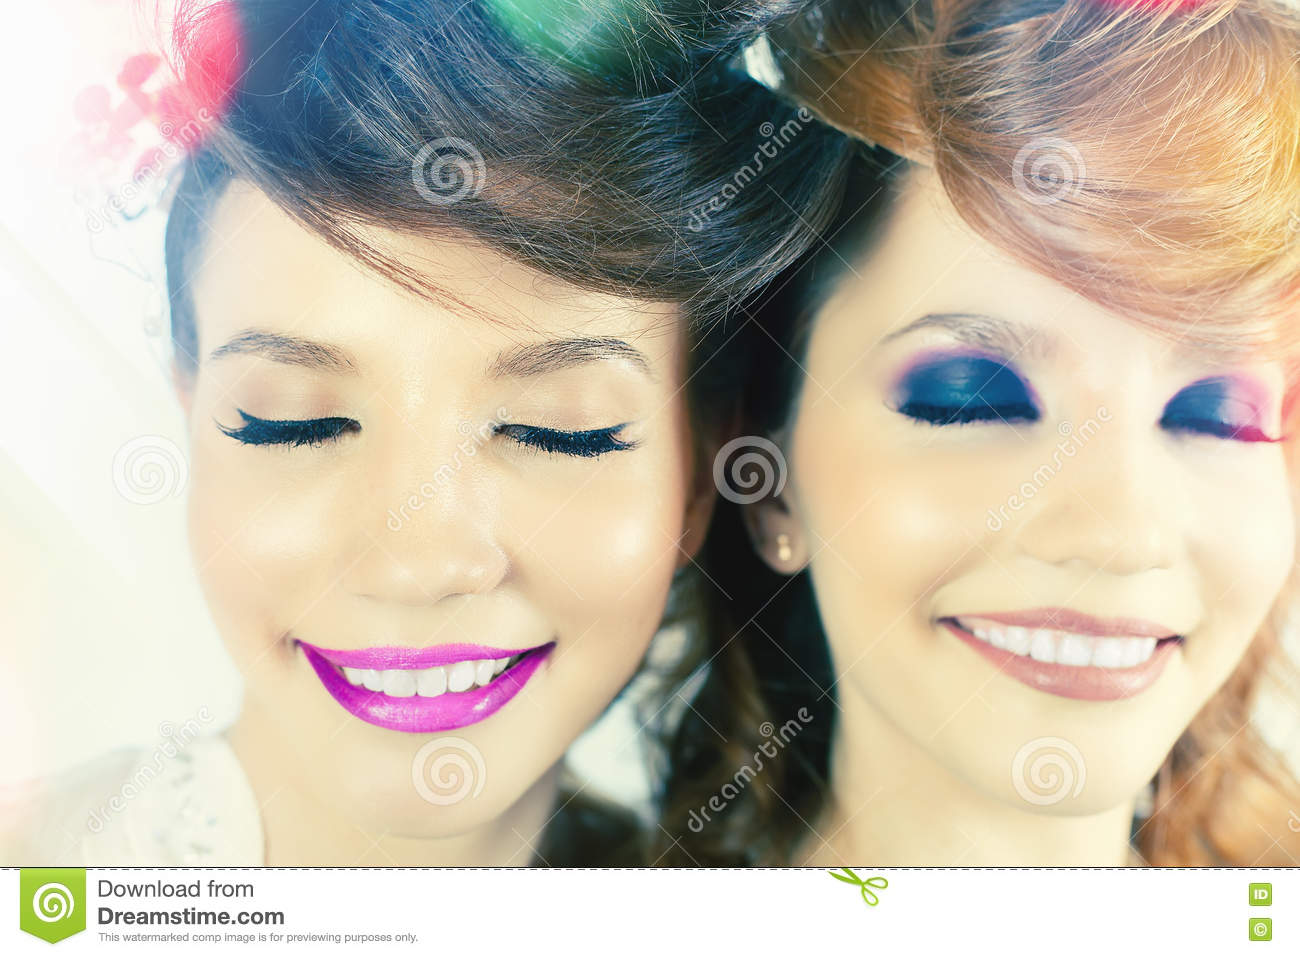 Absolutely Gorgeous Twins Girls with Fashion Make-up